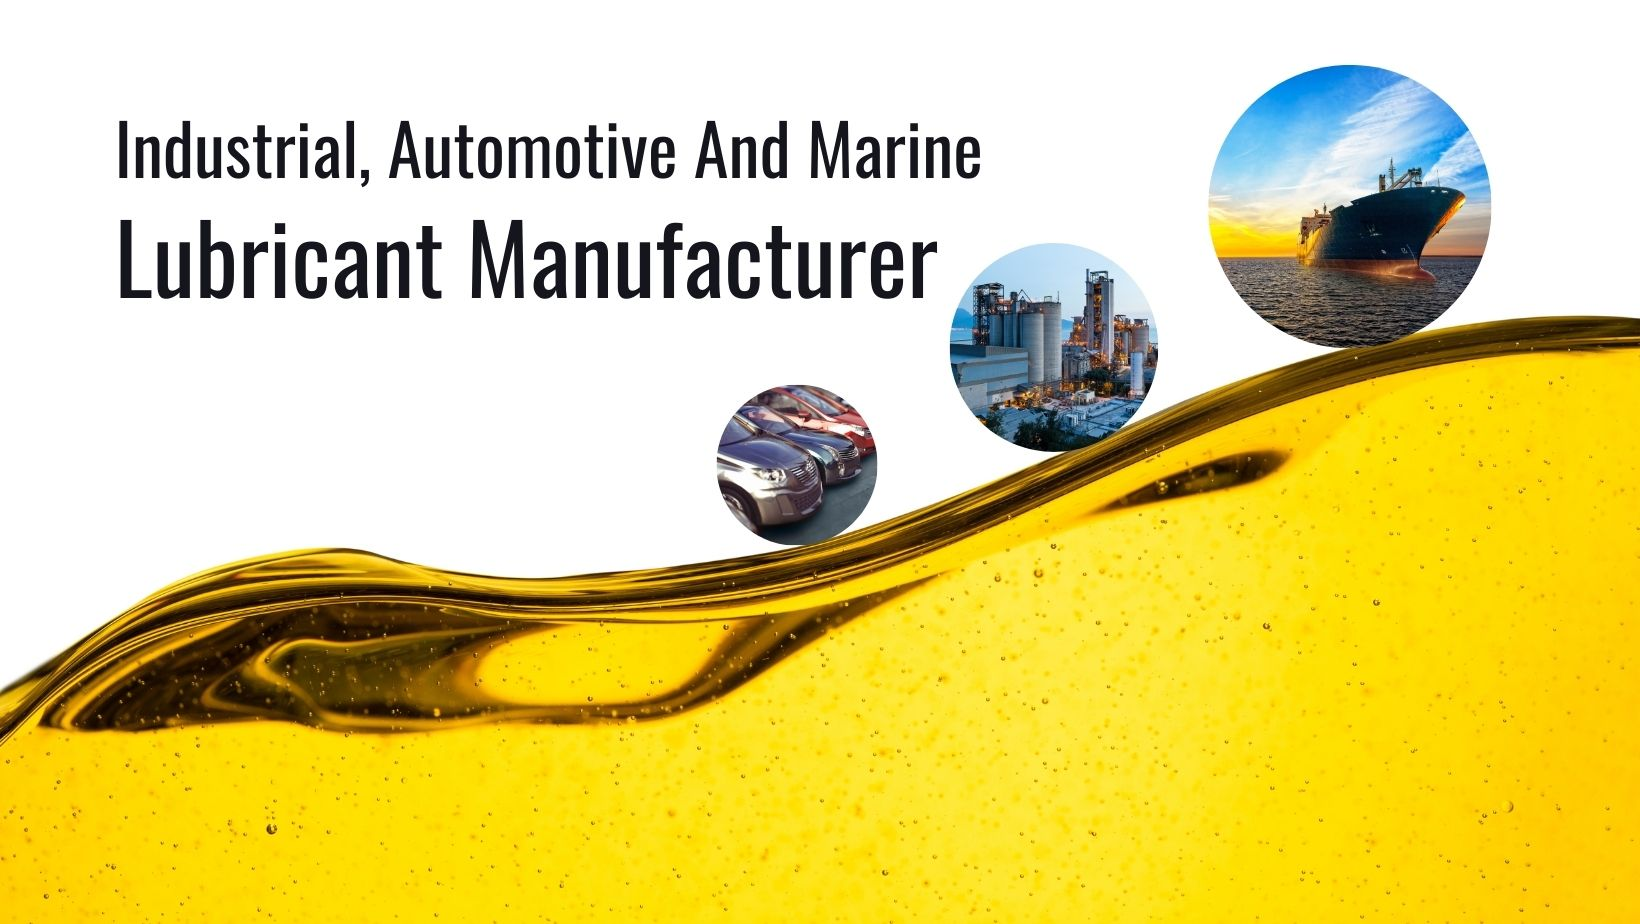 Industrial, Automotive And Marine Lubricant Manufacturer And Supplier